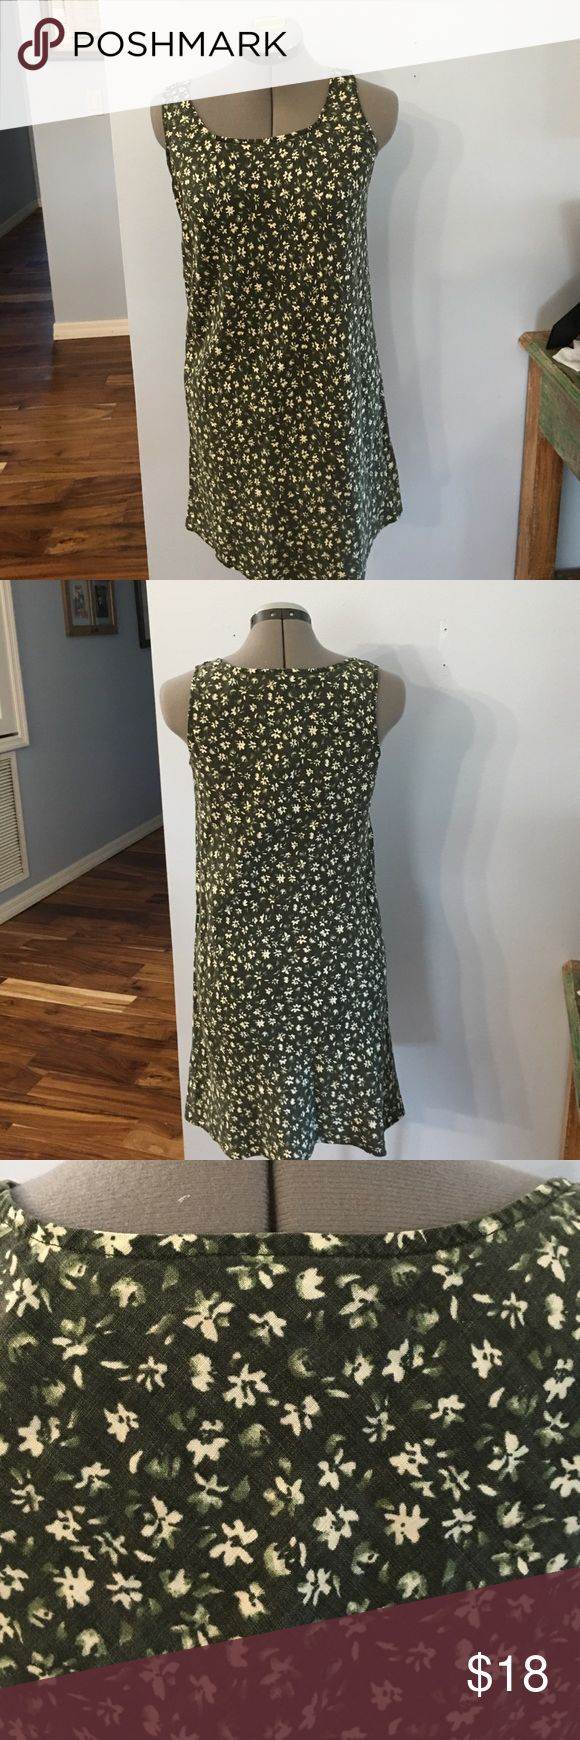 Abercrombie & Fitch dress Great condition. No tears or stains Abercrombie & Fitch Dresses